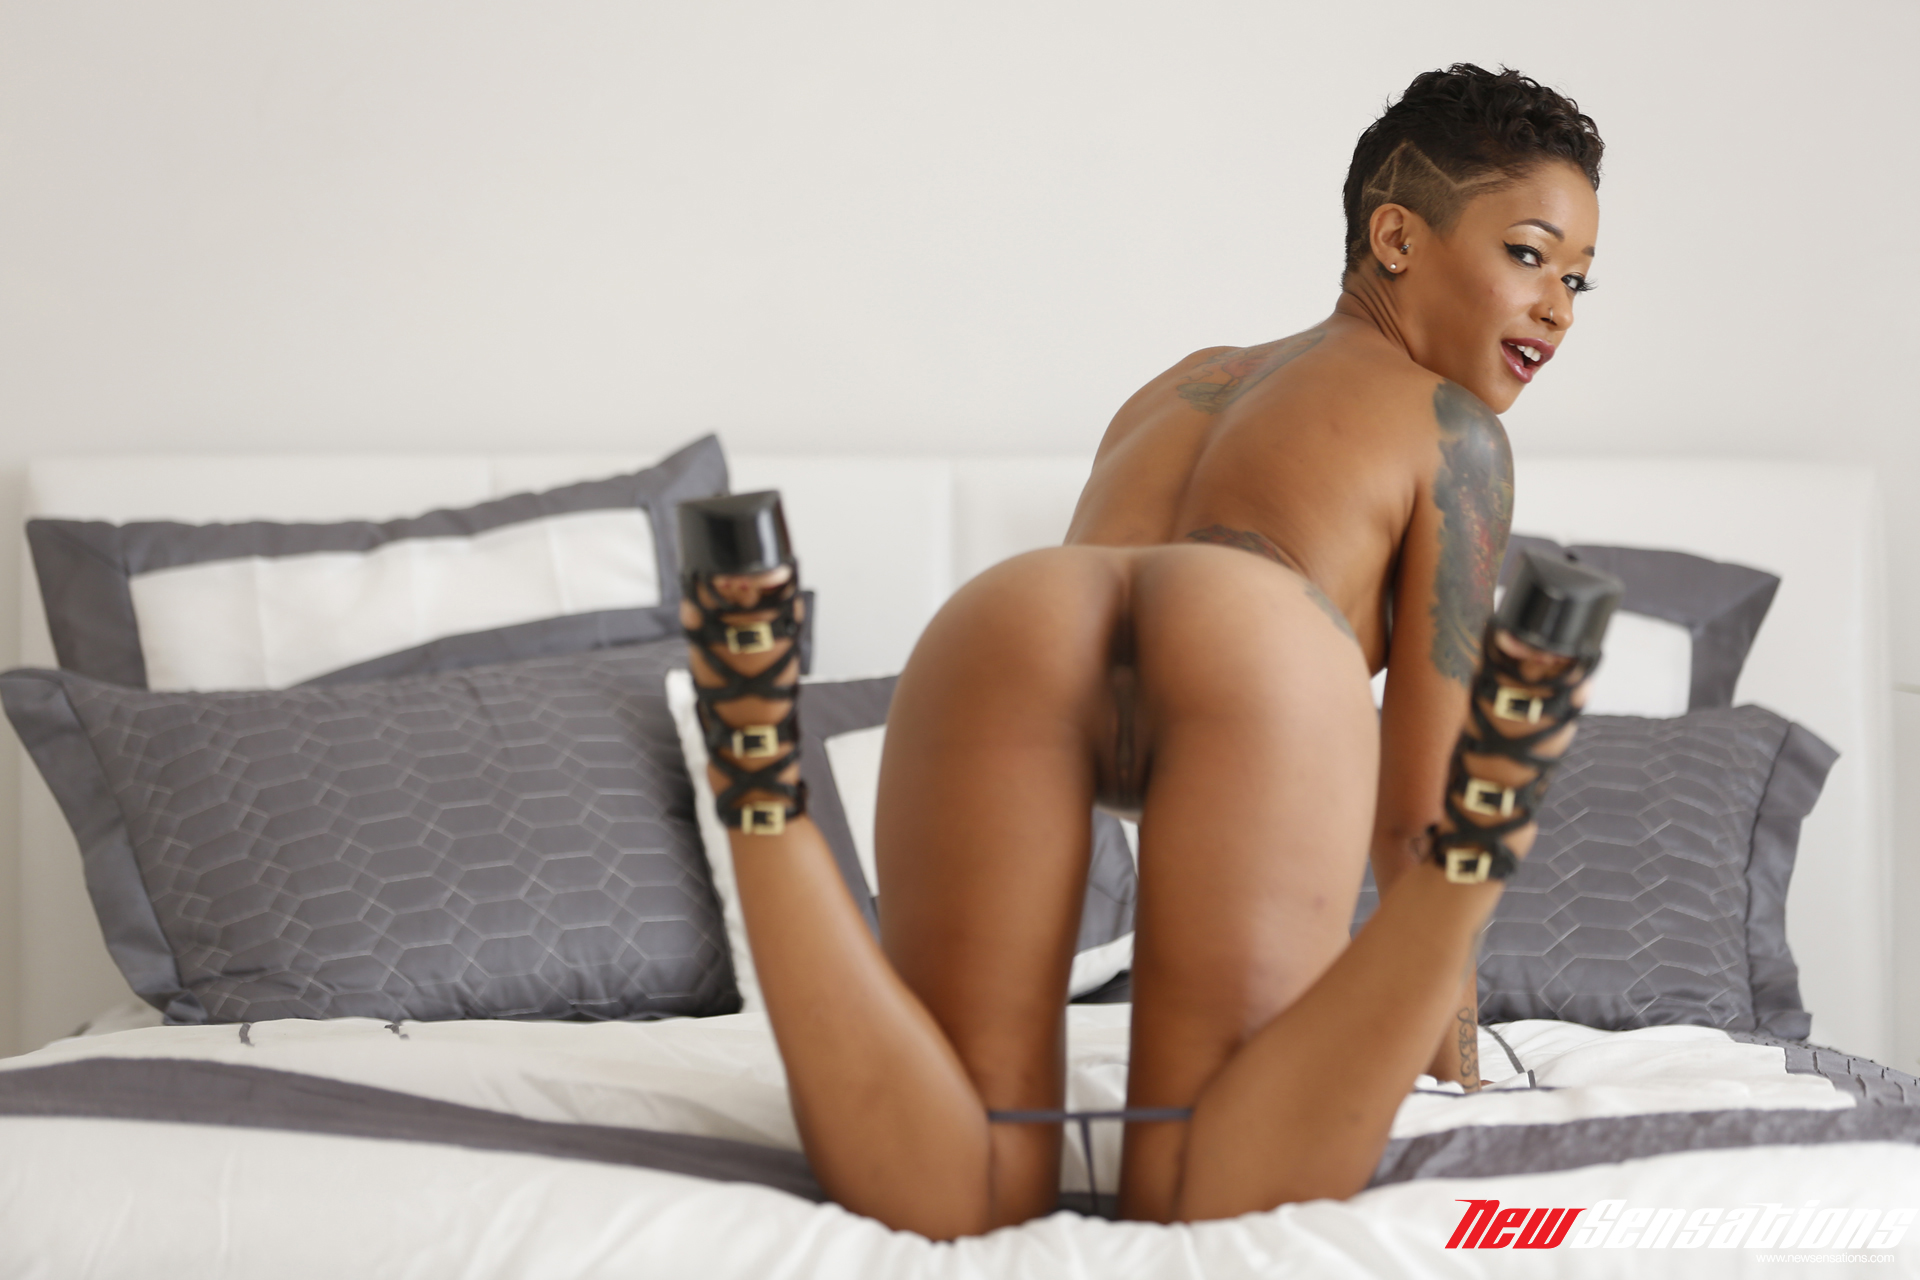 Love porn. You Black Dick Fucking Pussy Hard amalways horny and love